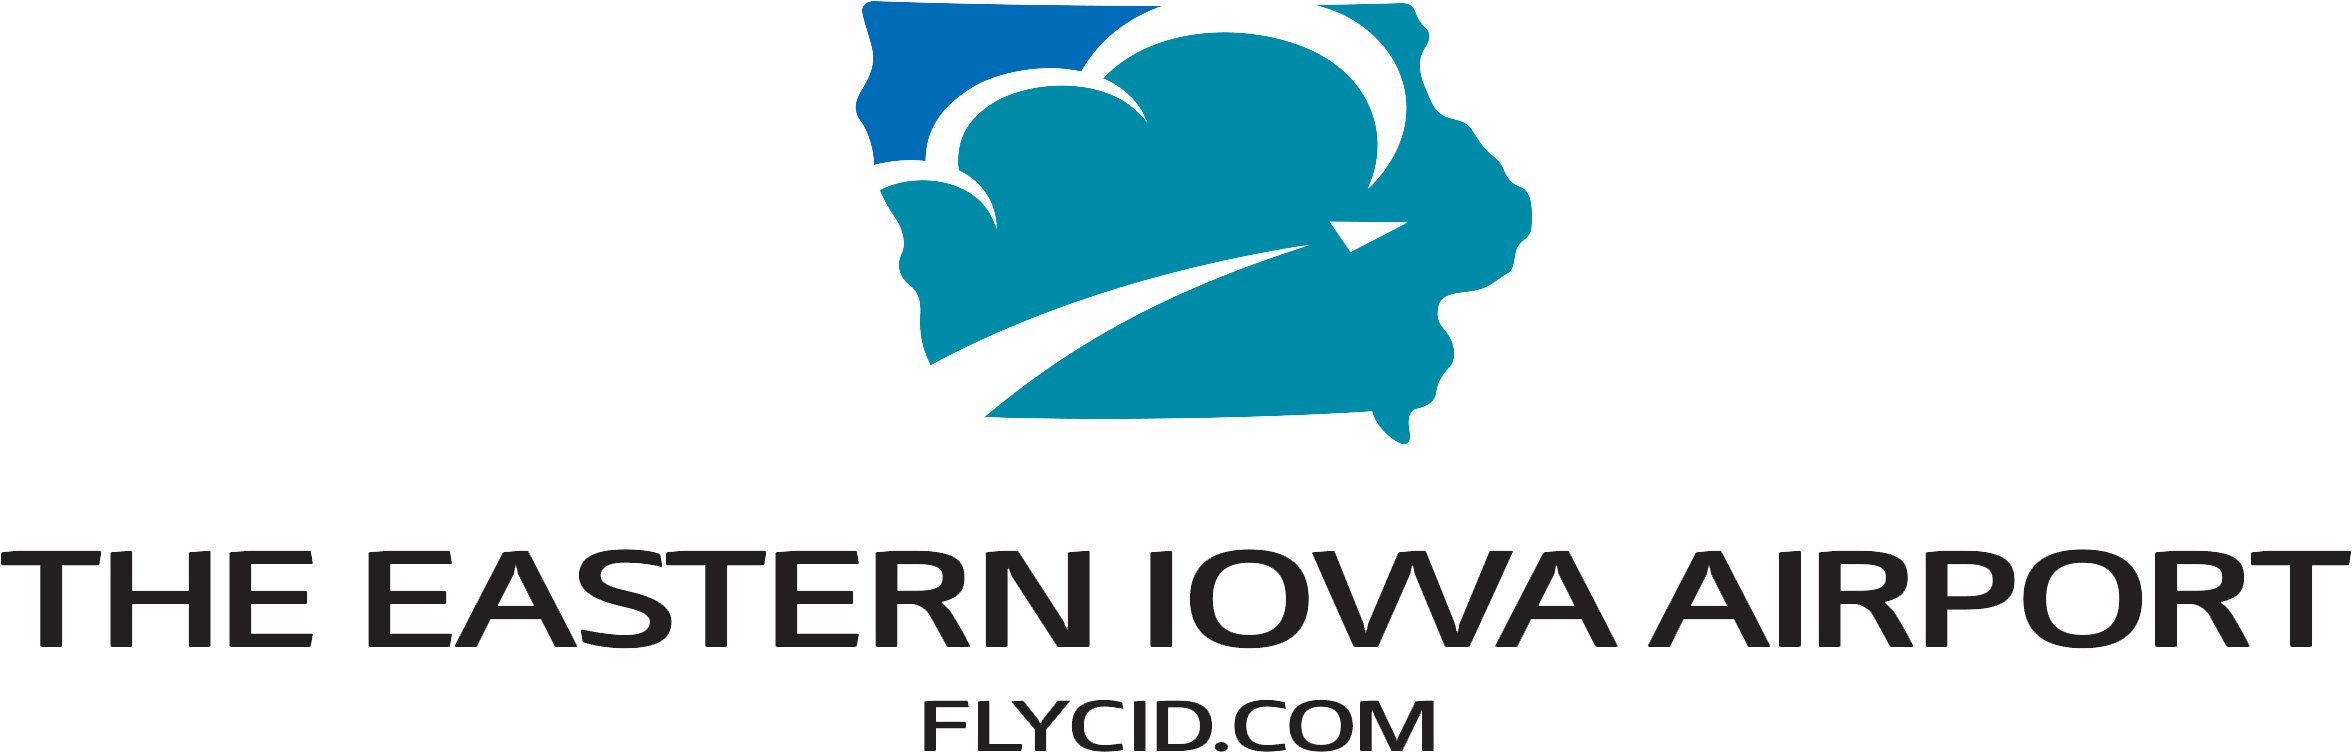 Eastern Iowa Airport logo